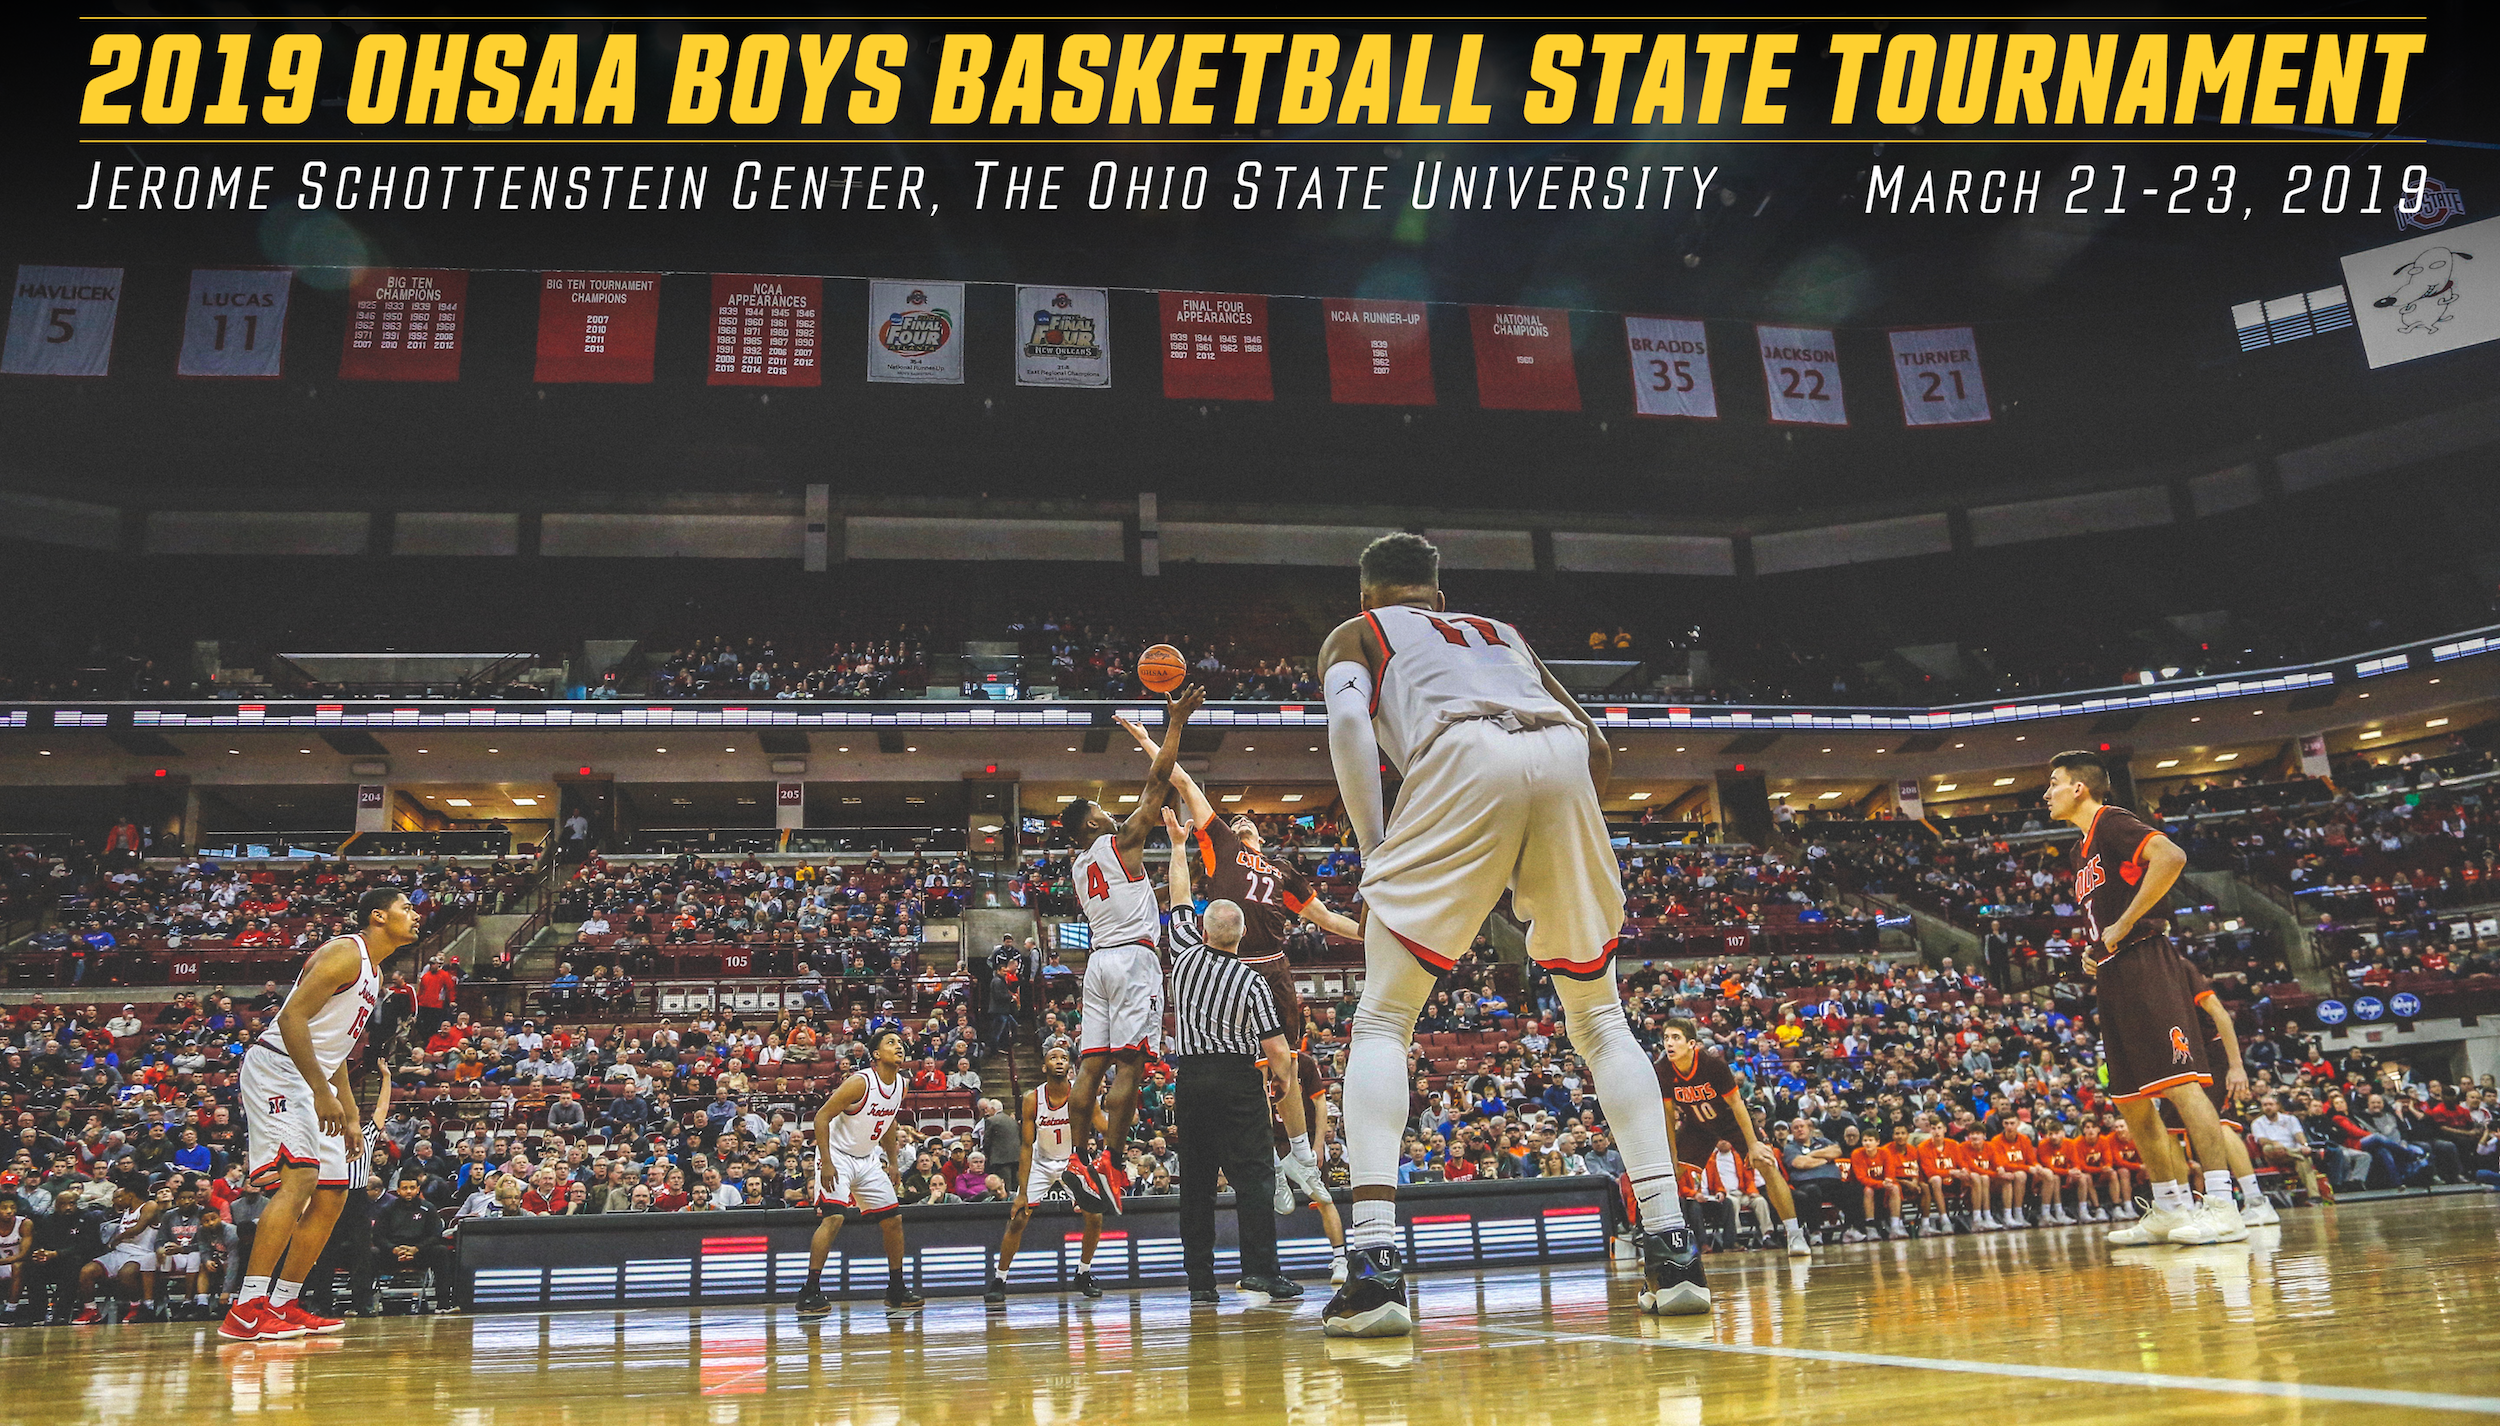 2019 OHSAA Boys Basketball State Tournament Coverage